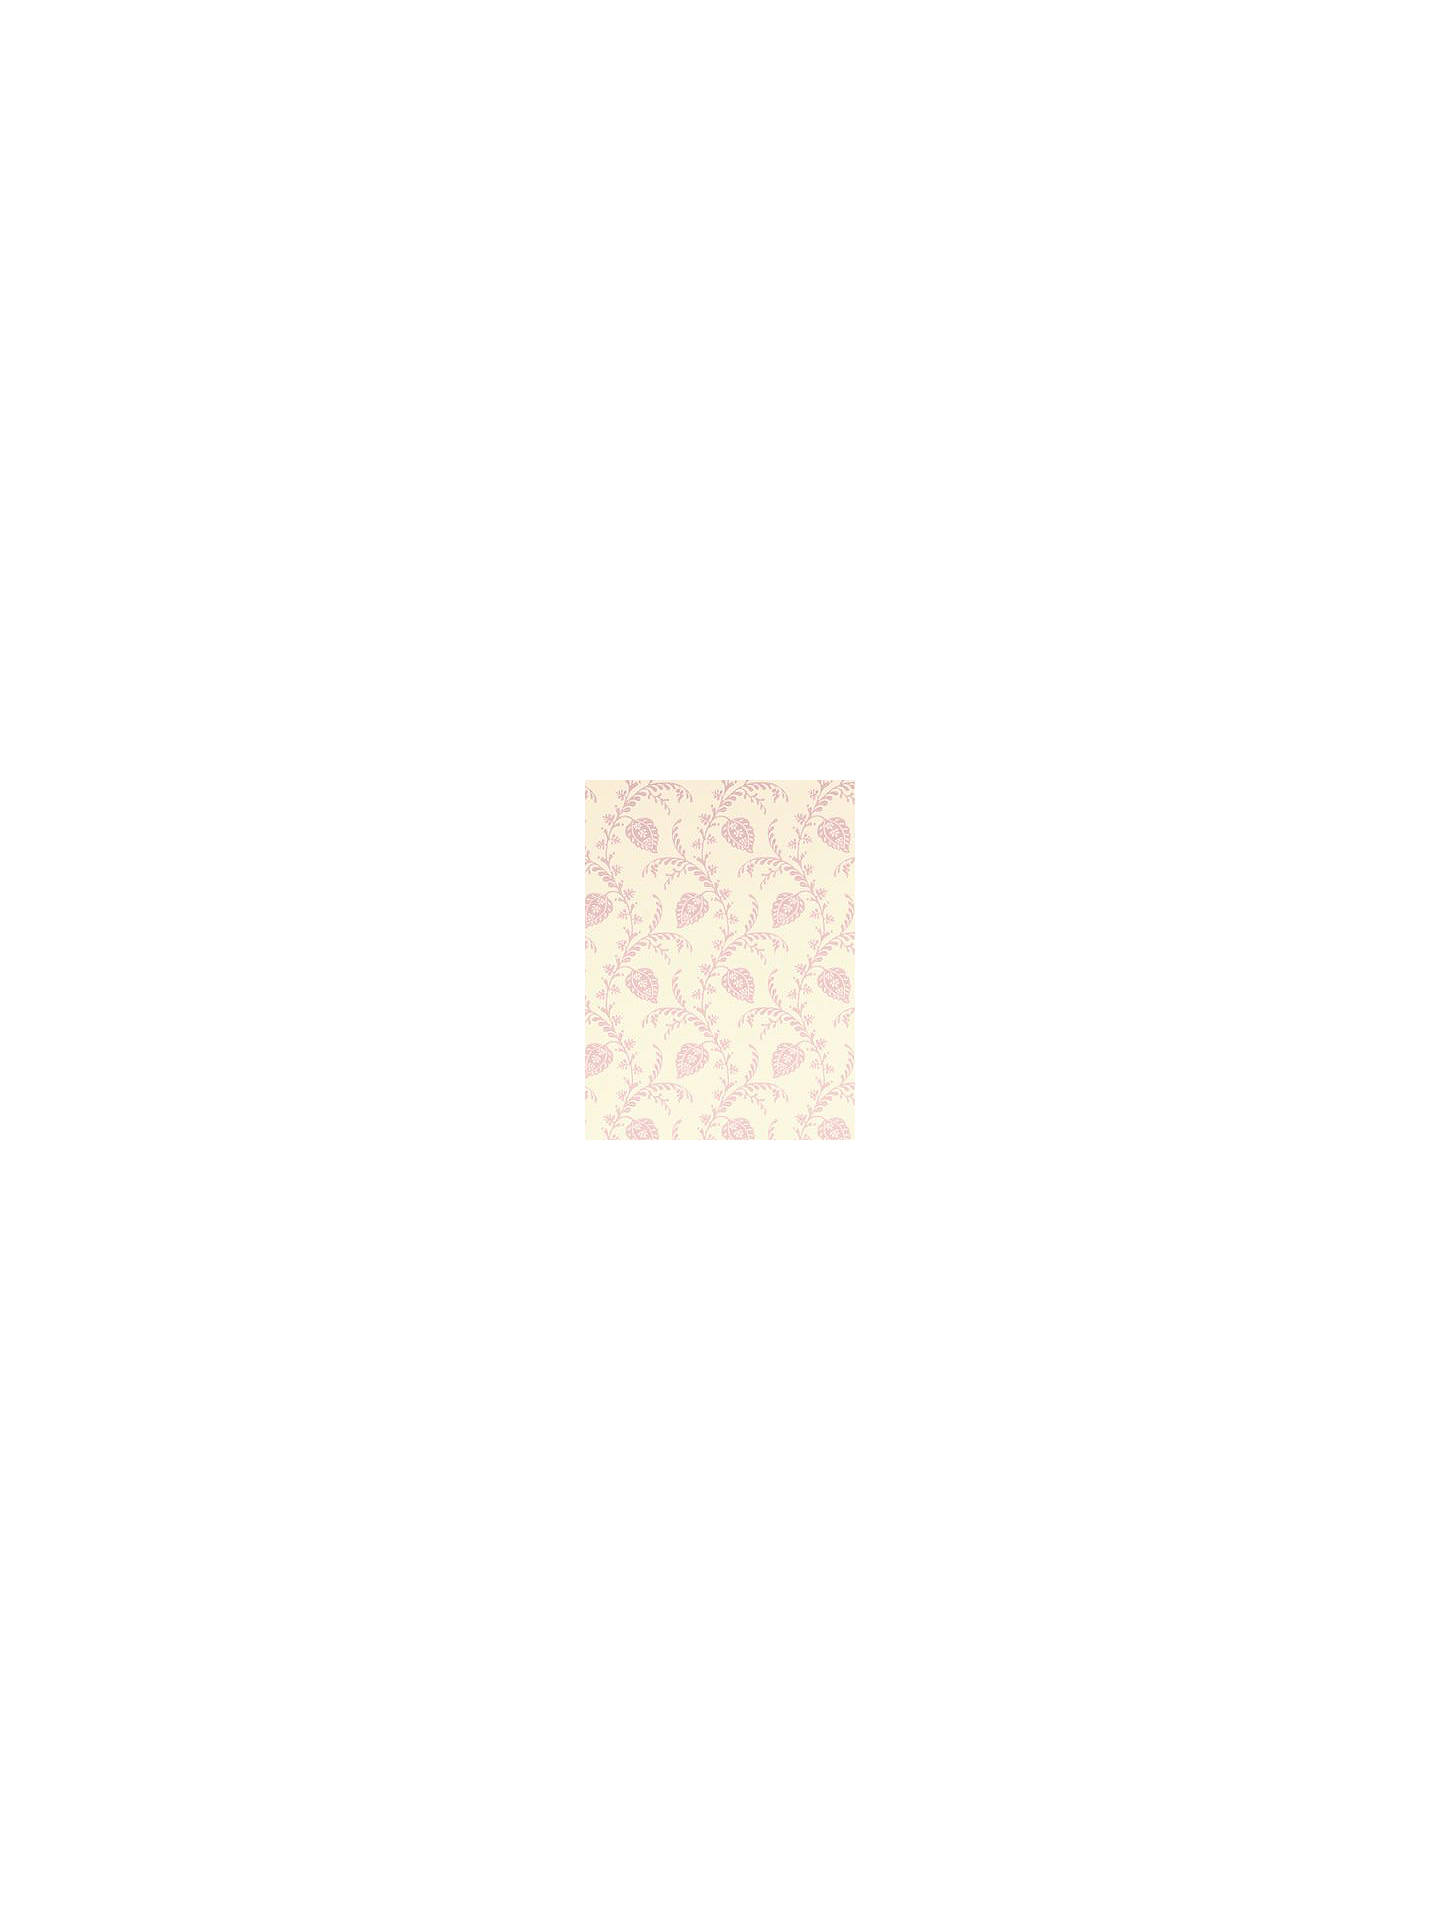 Buy Sanderson Pelham Wallpaper, Cream/Lilac, DPEMPH102 Online at johnlewis.com